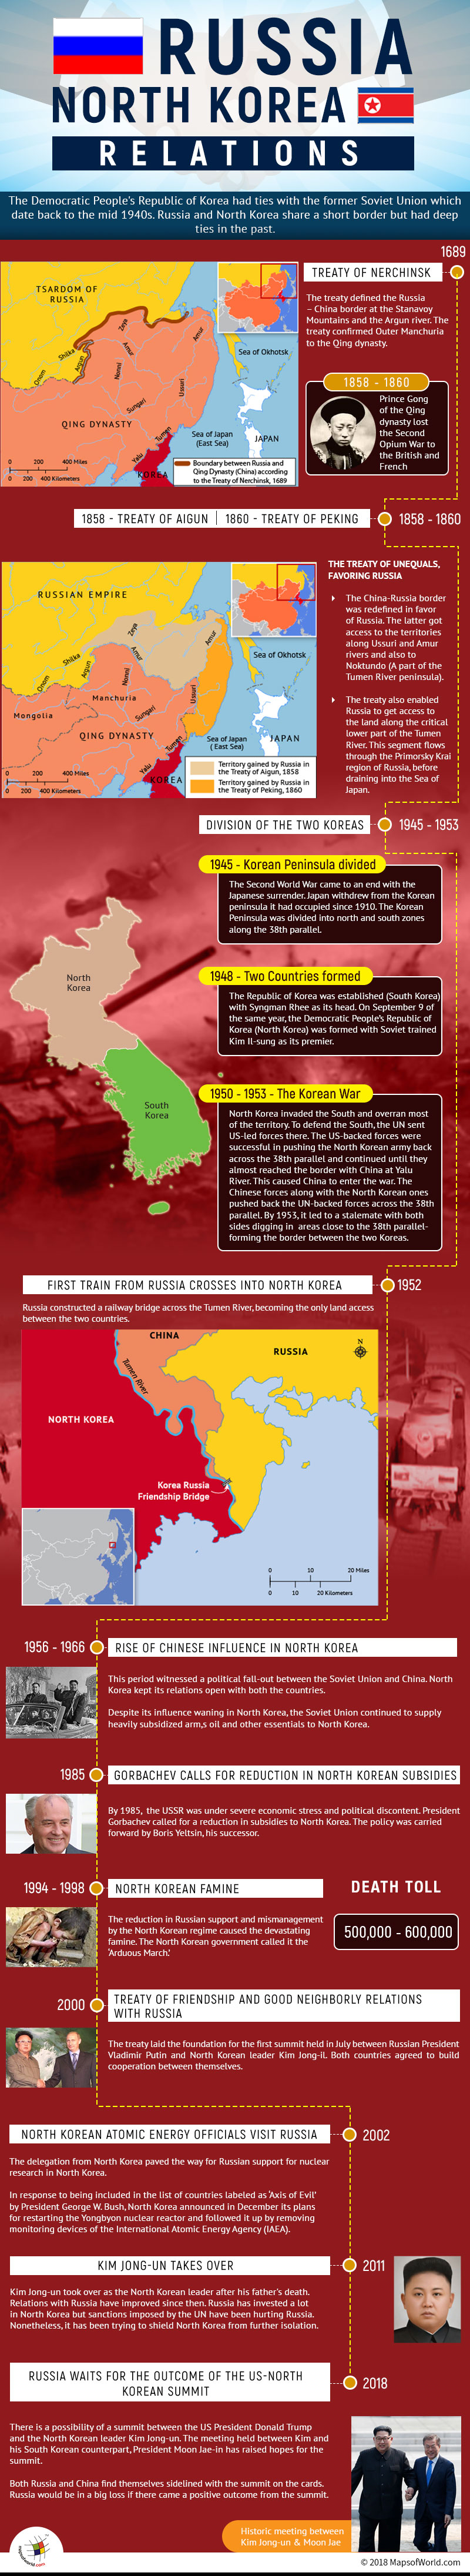 Infographic describing Russia and North Korea Relations